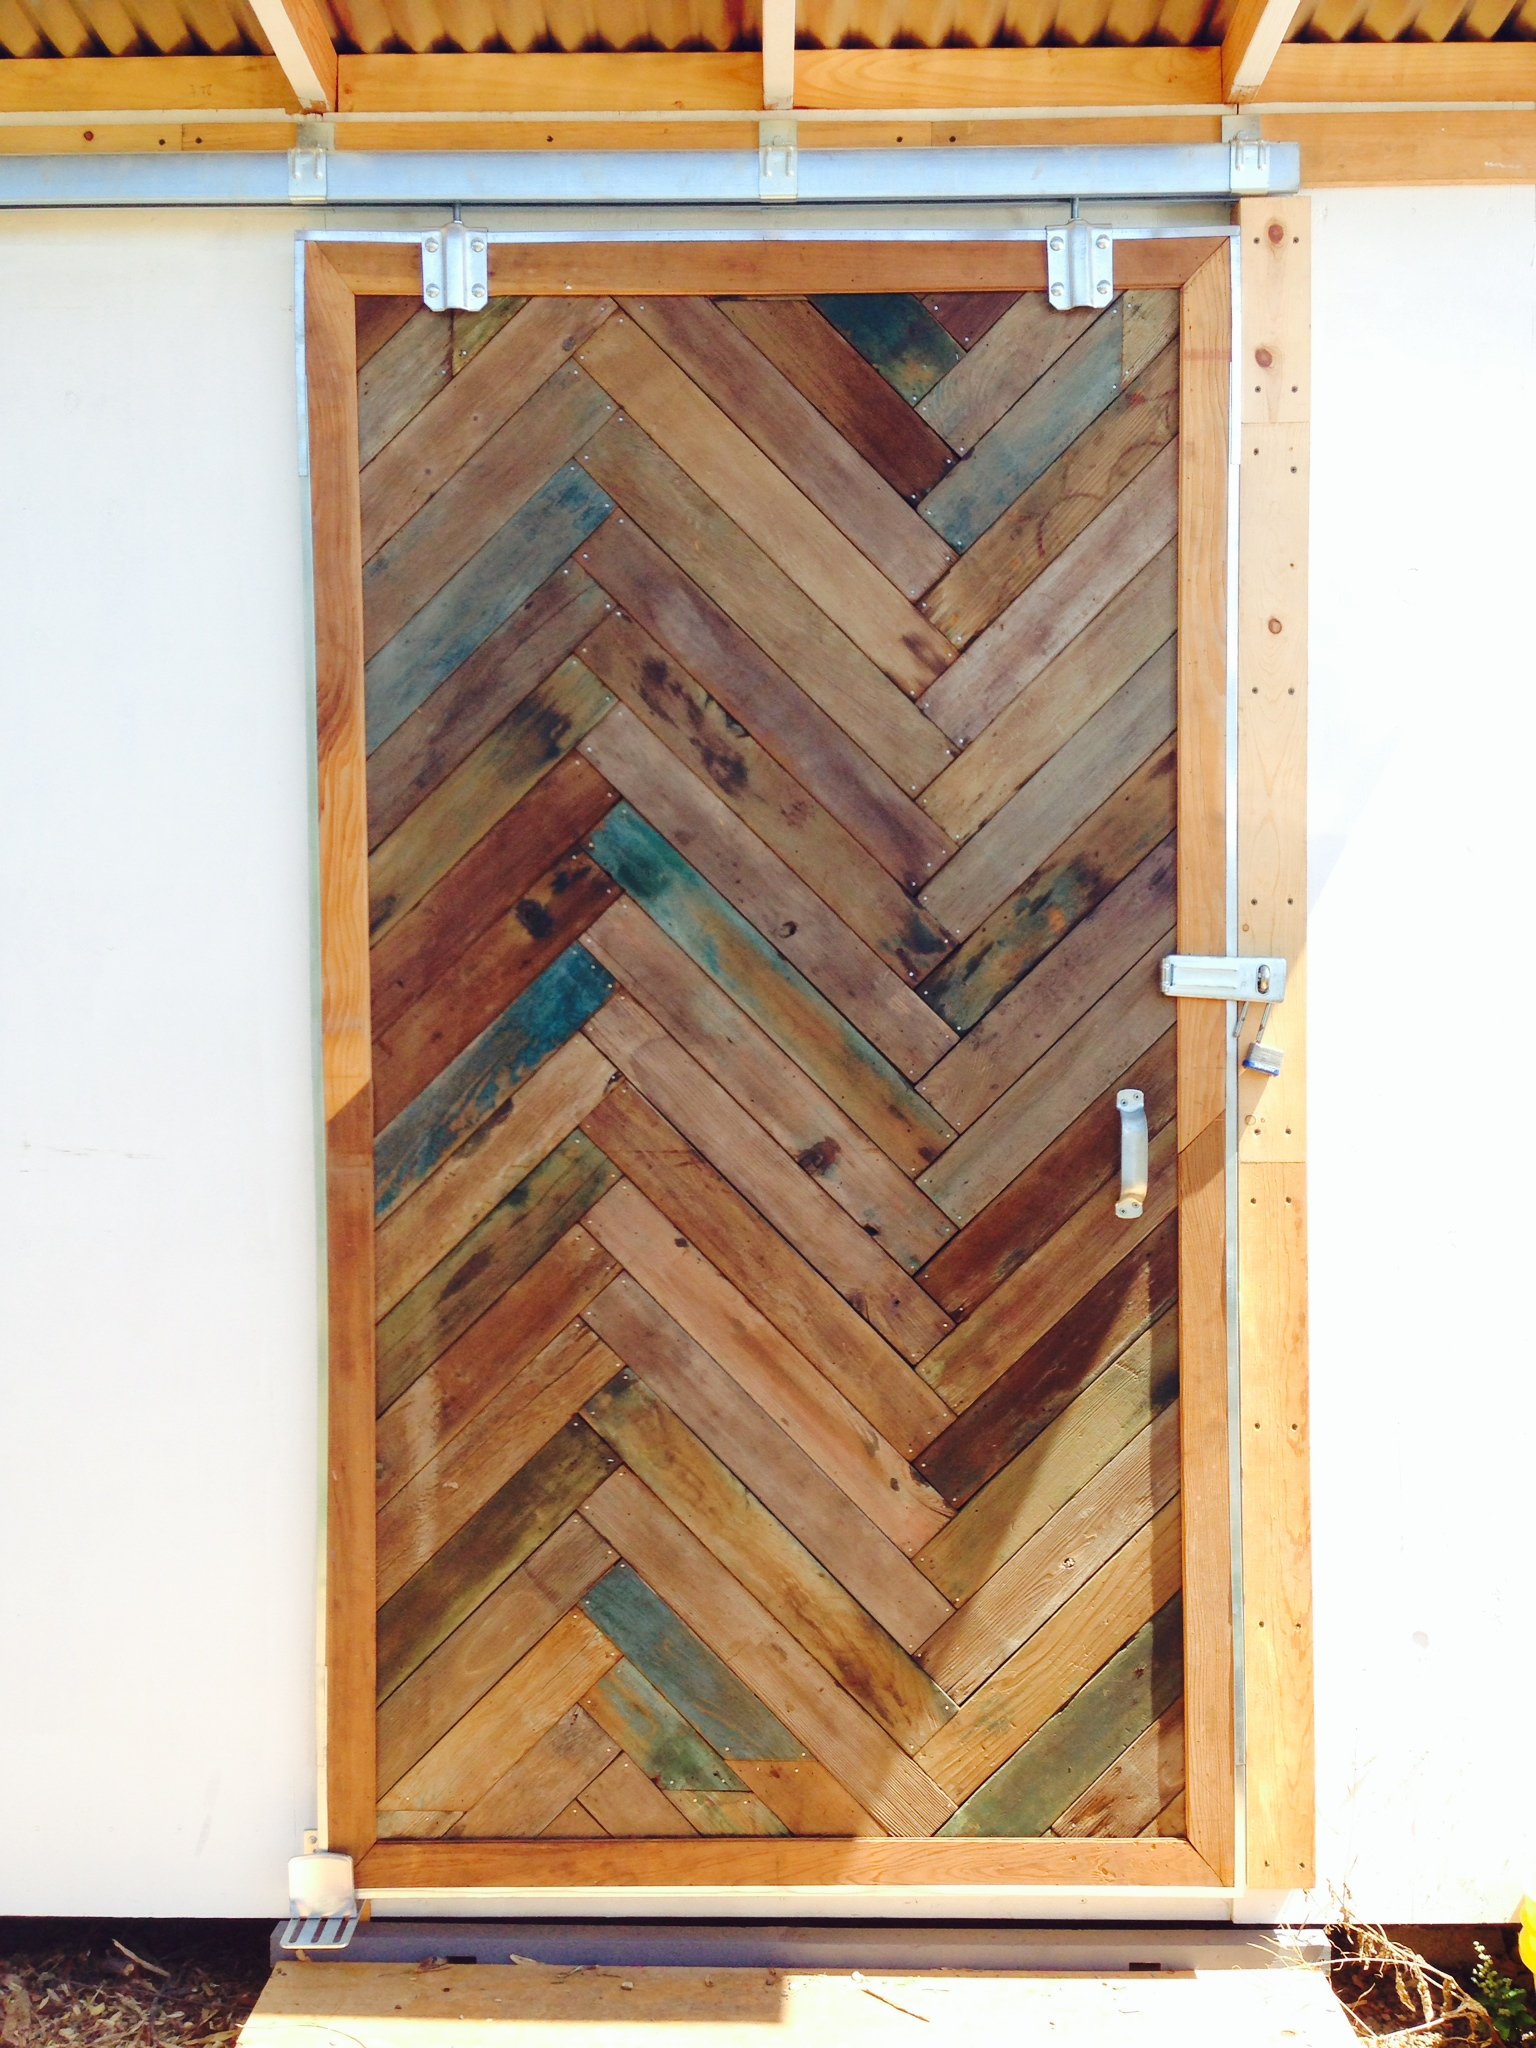 The wood to make this door was obtained from the Oxford Tract Greenhouses at UC Berkeley.